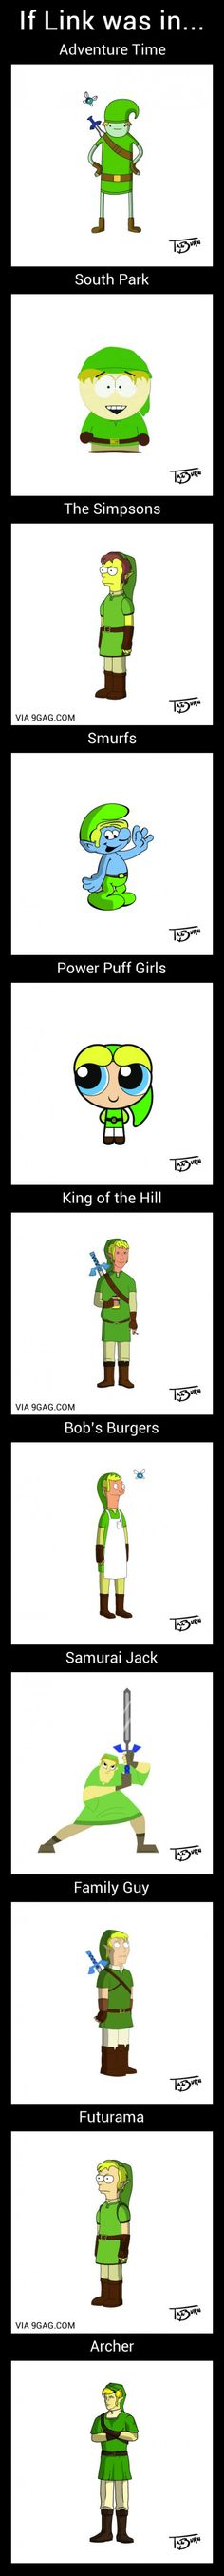 If Link Was In Other Cartoon Universes